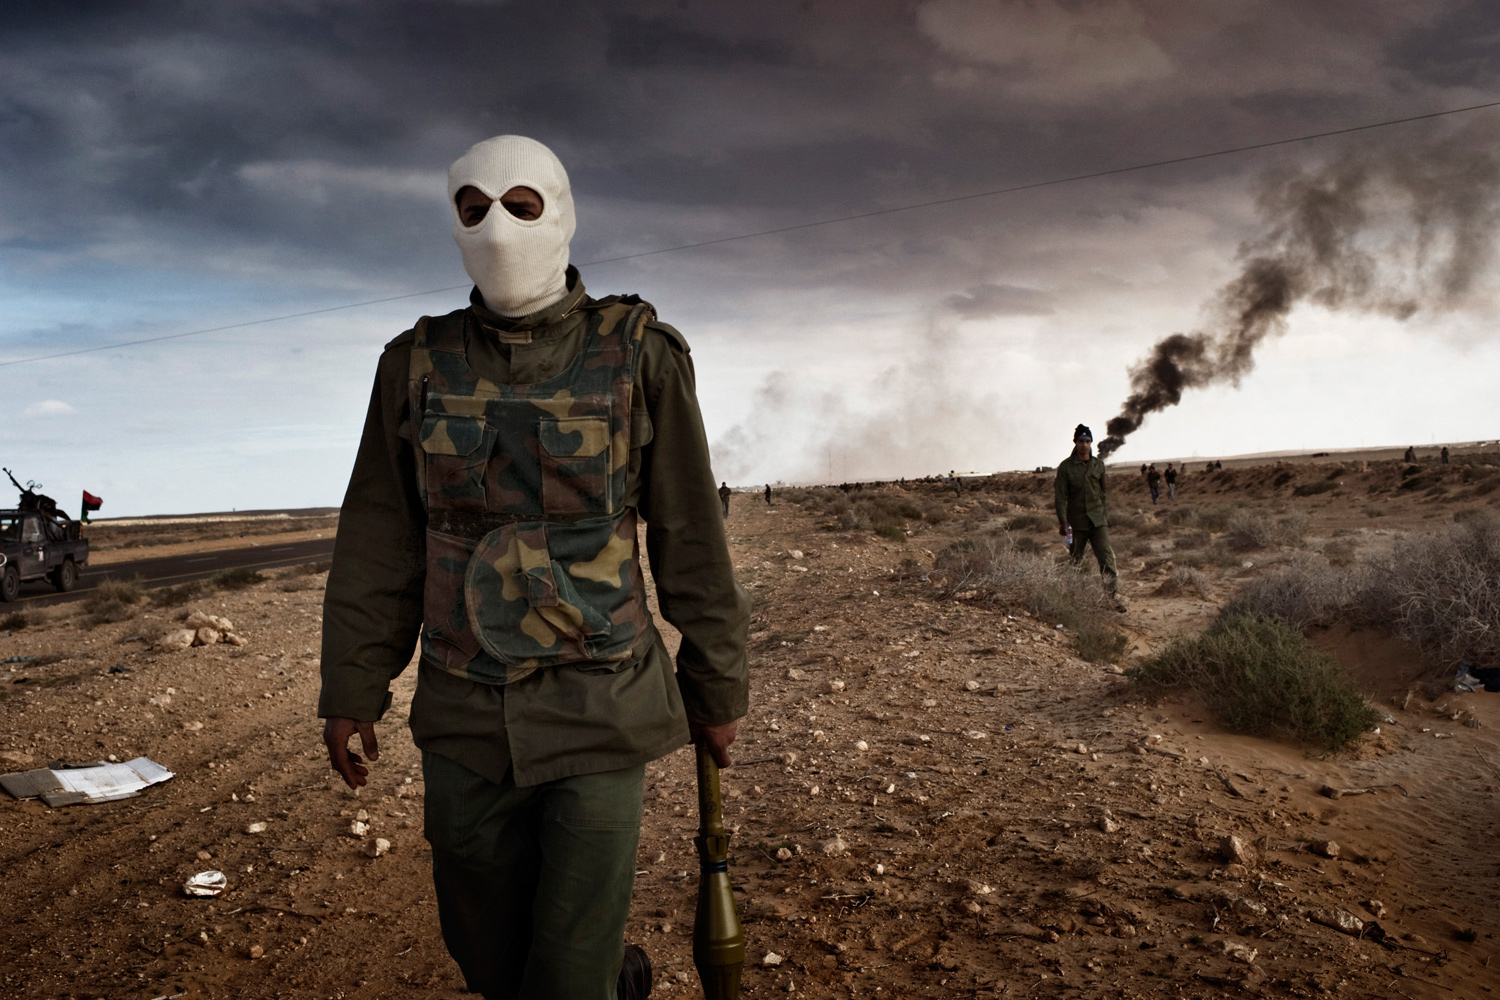 March 9, 2011. Libyan rebels advance during a battle with government troops as an oil facility burns.